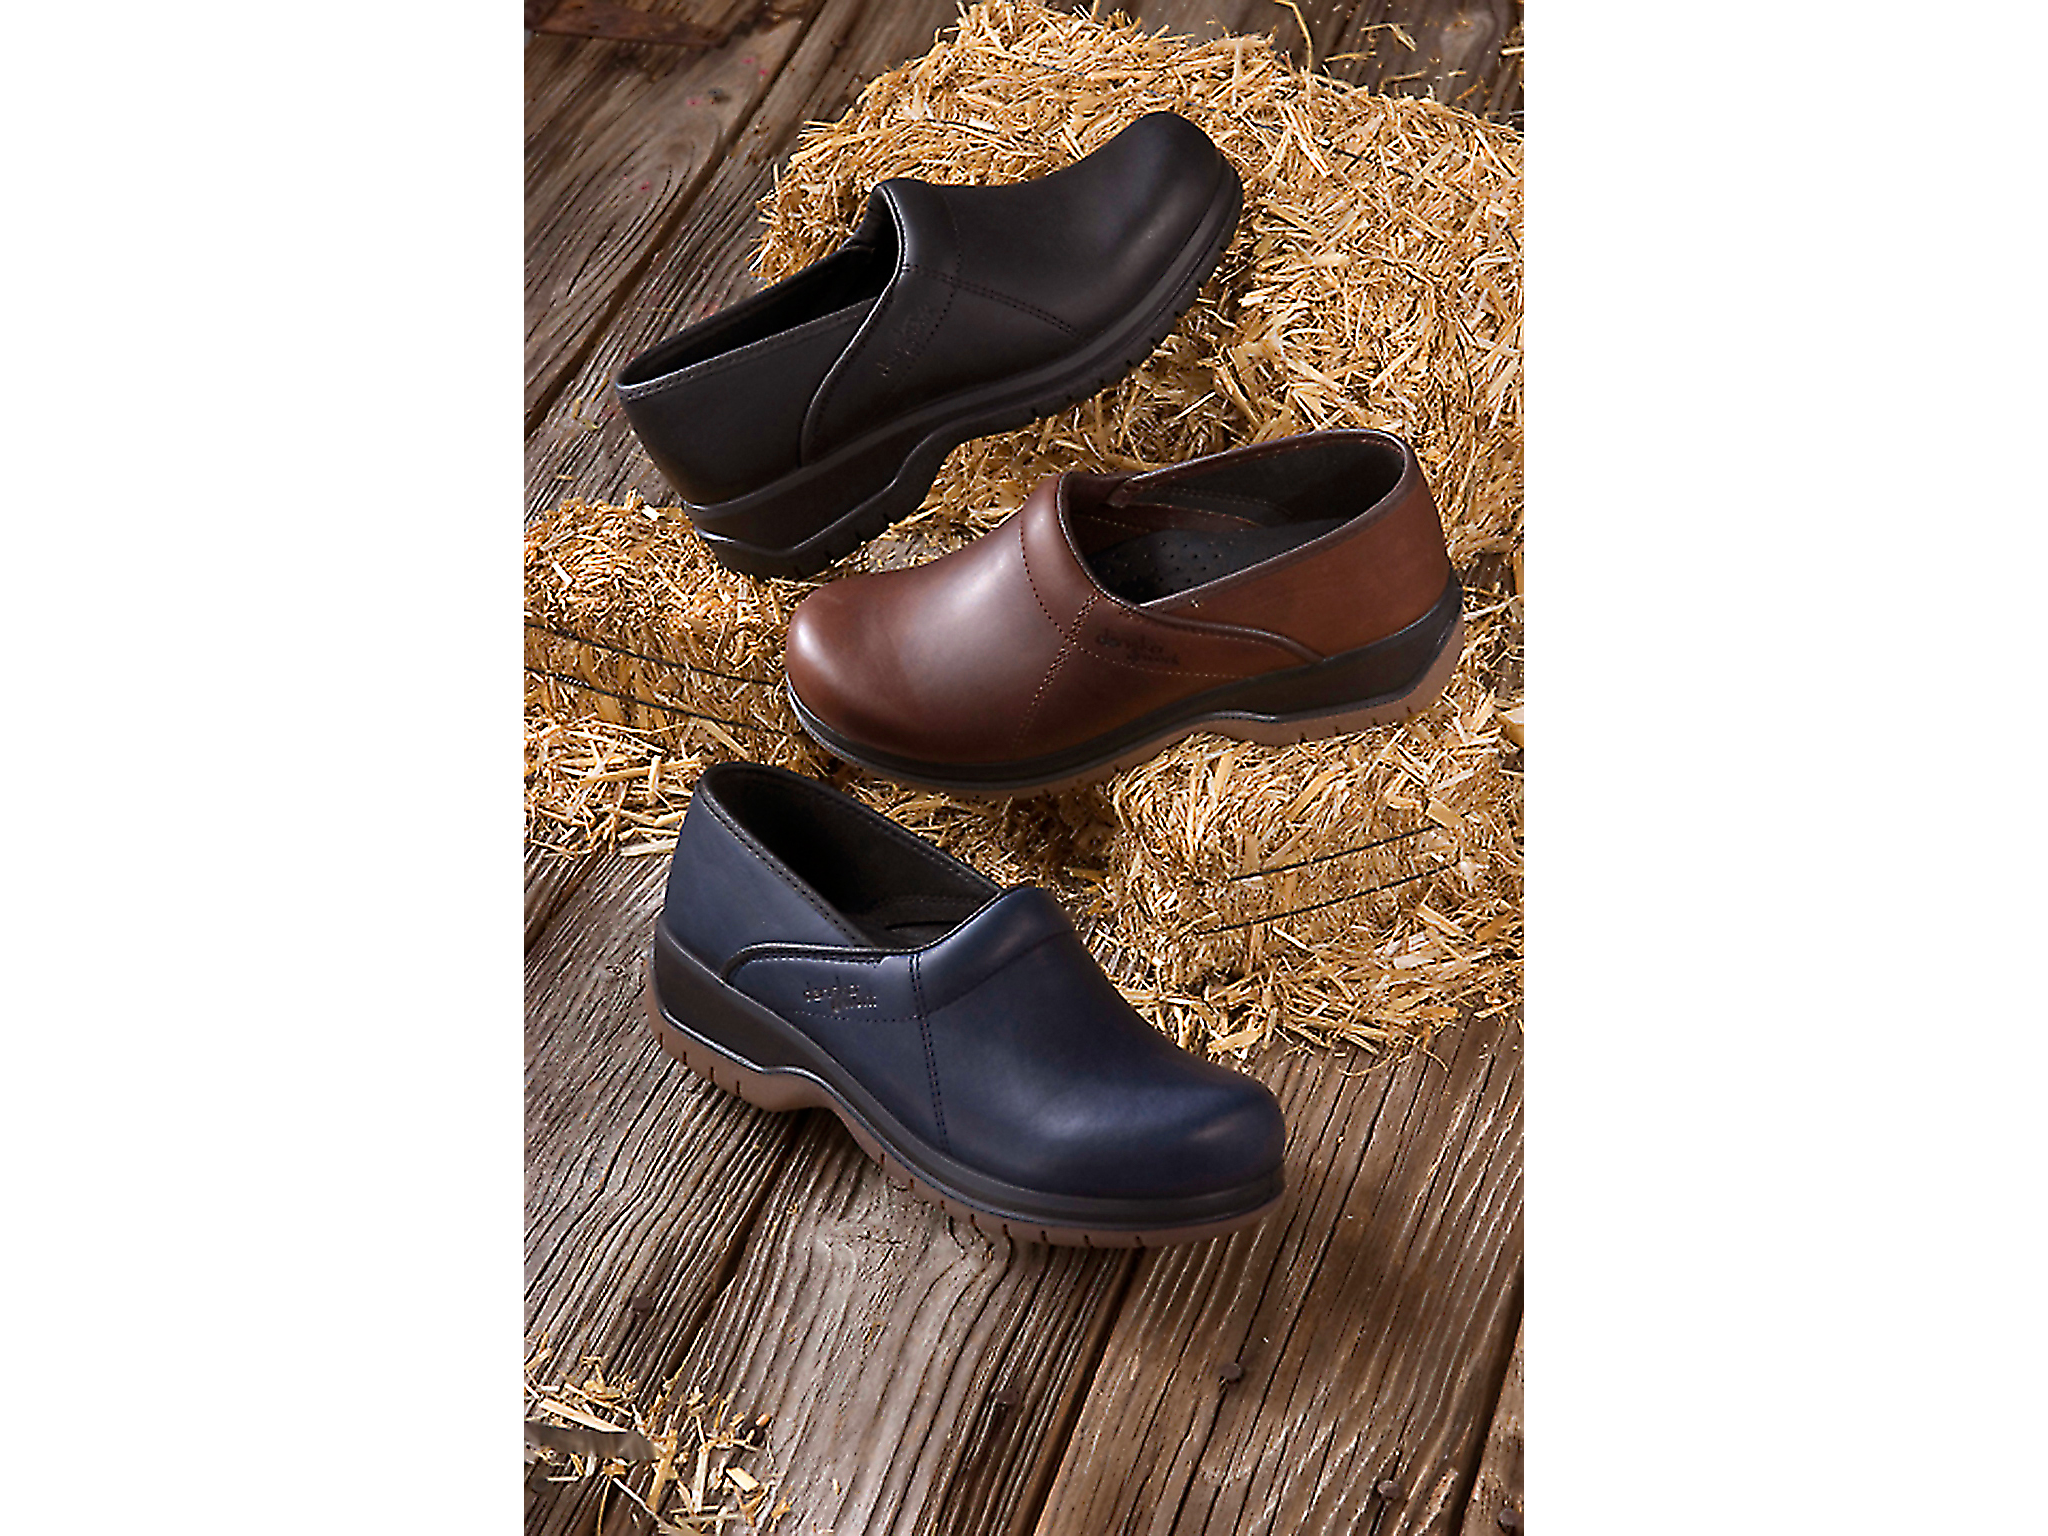 Product shot for catalog of clogs with hay and old wood by photographer Craig Anderson